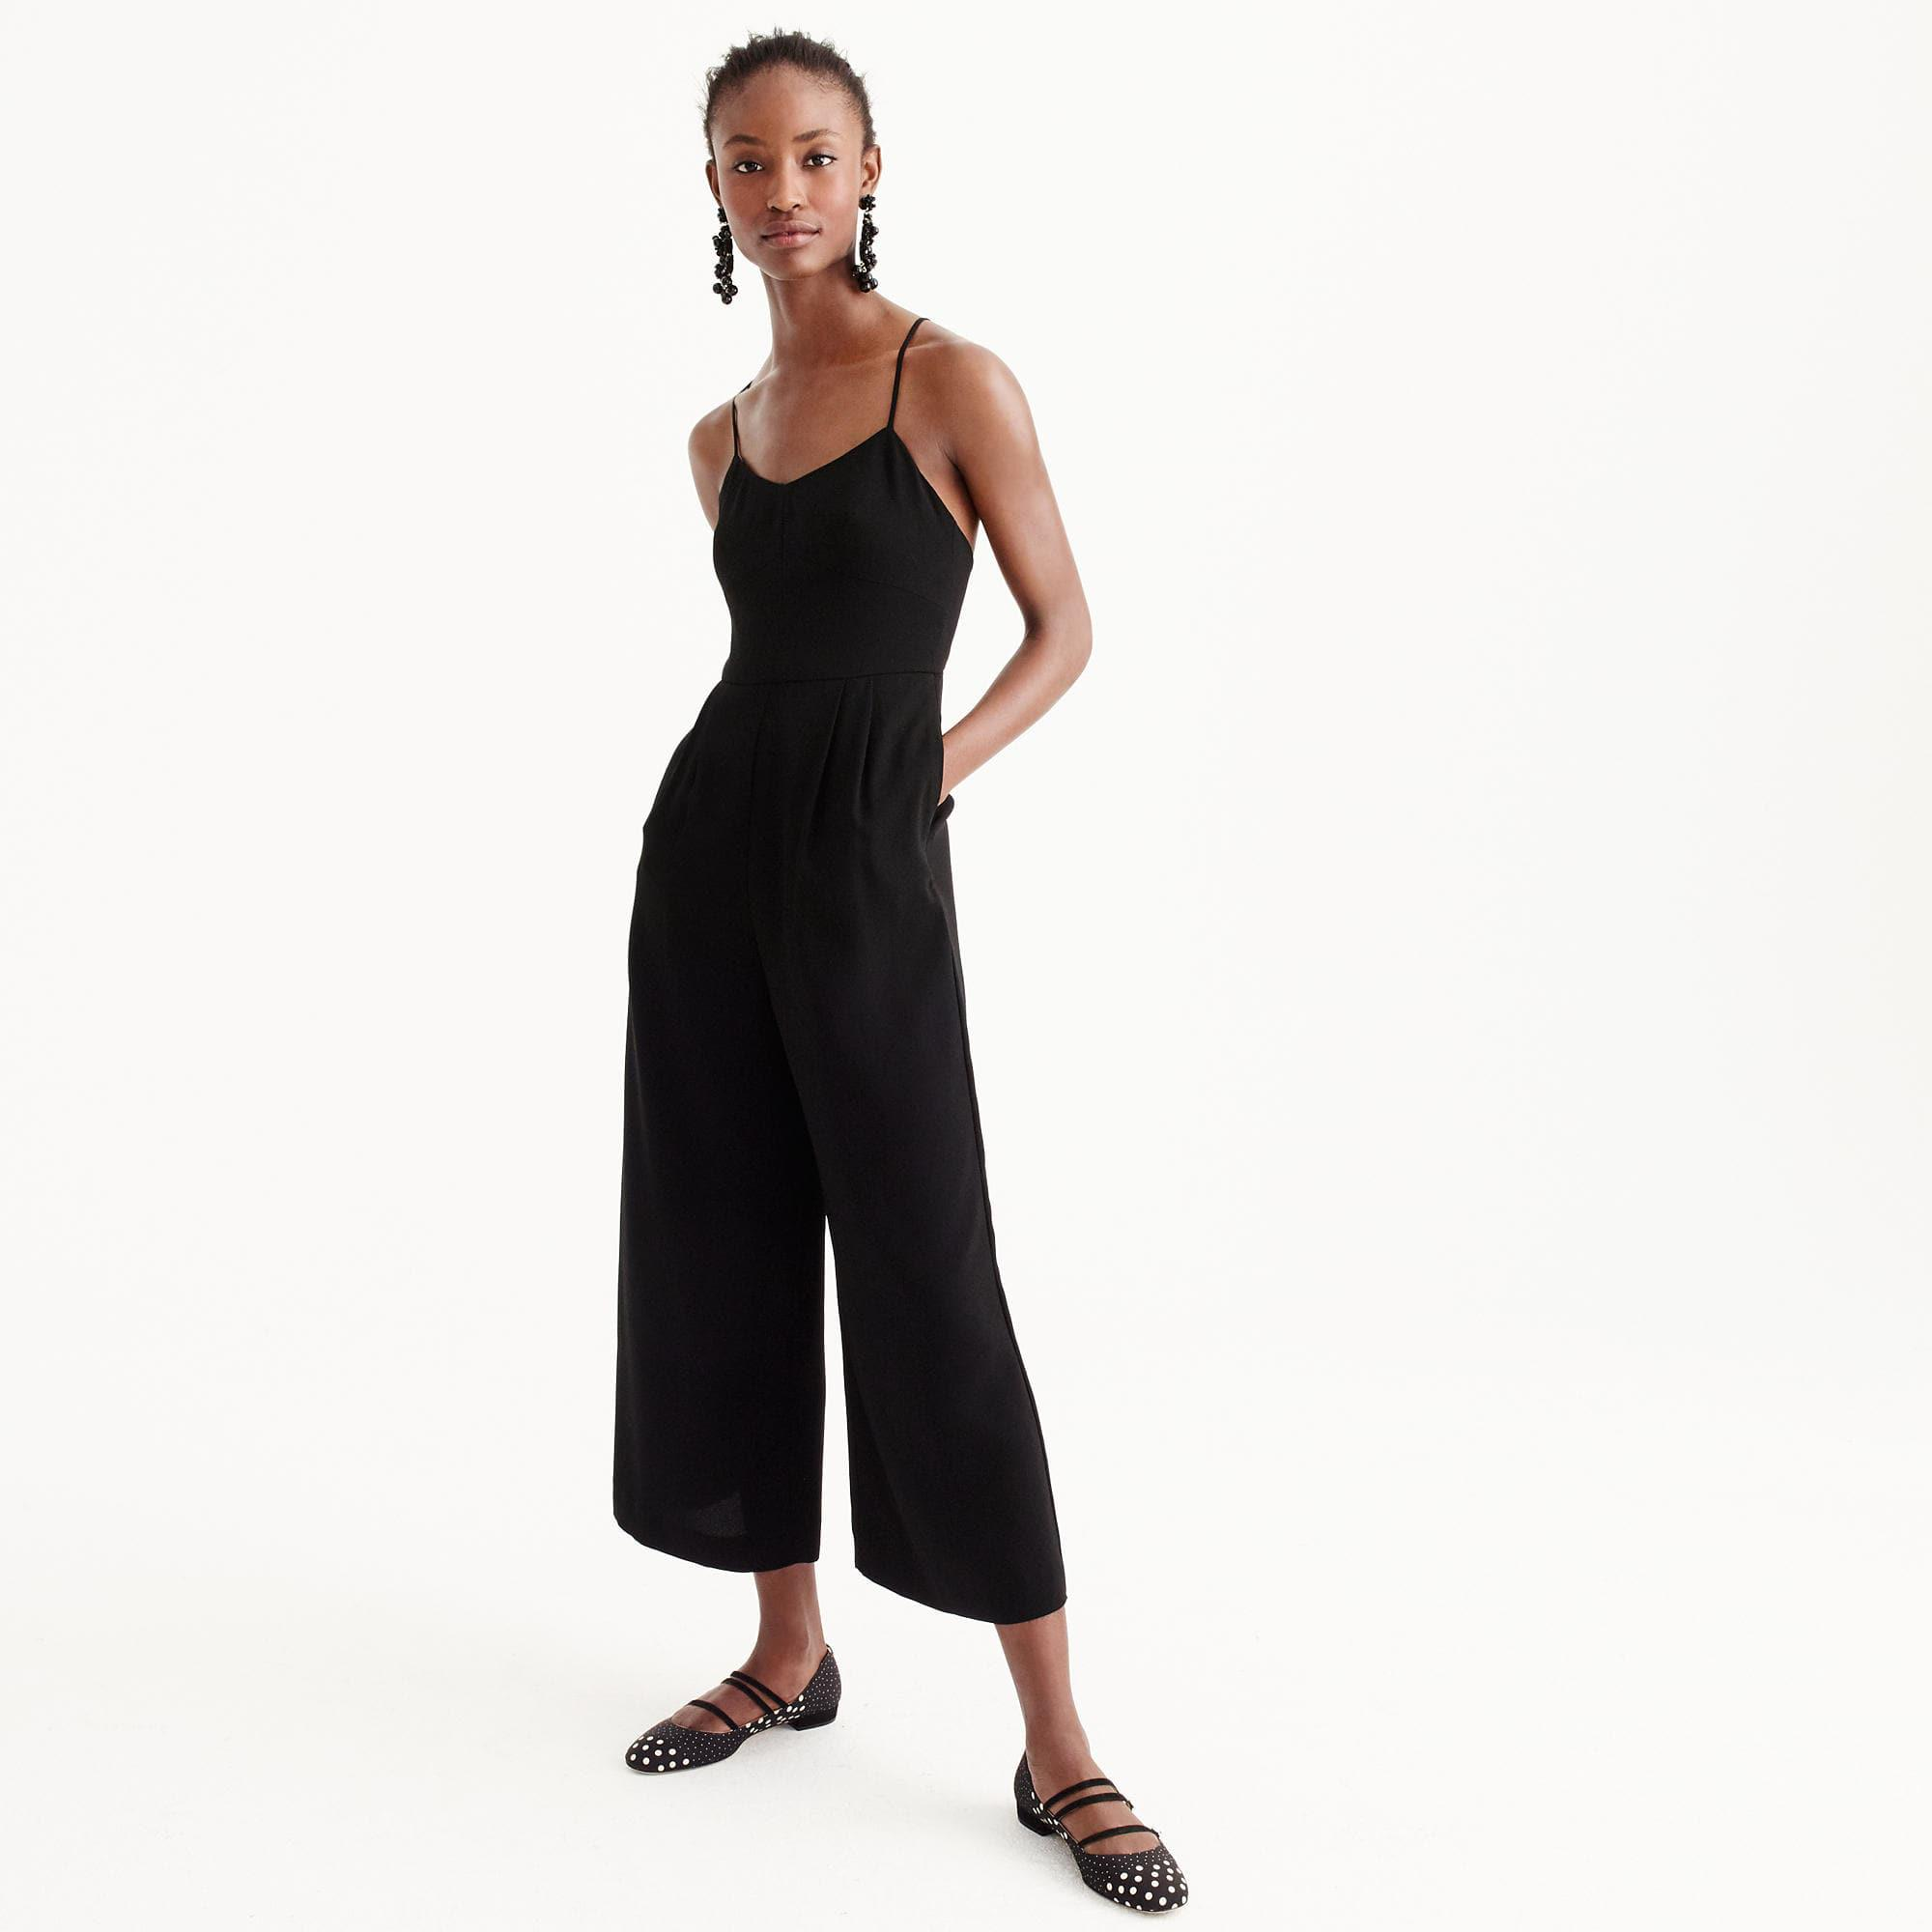 795f0ebe4a3d Lyst - J.Crew Petite Tie-back Jumpsuit in Black